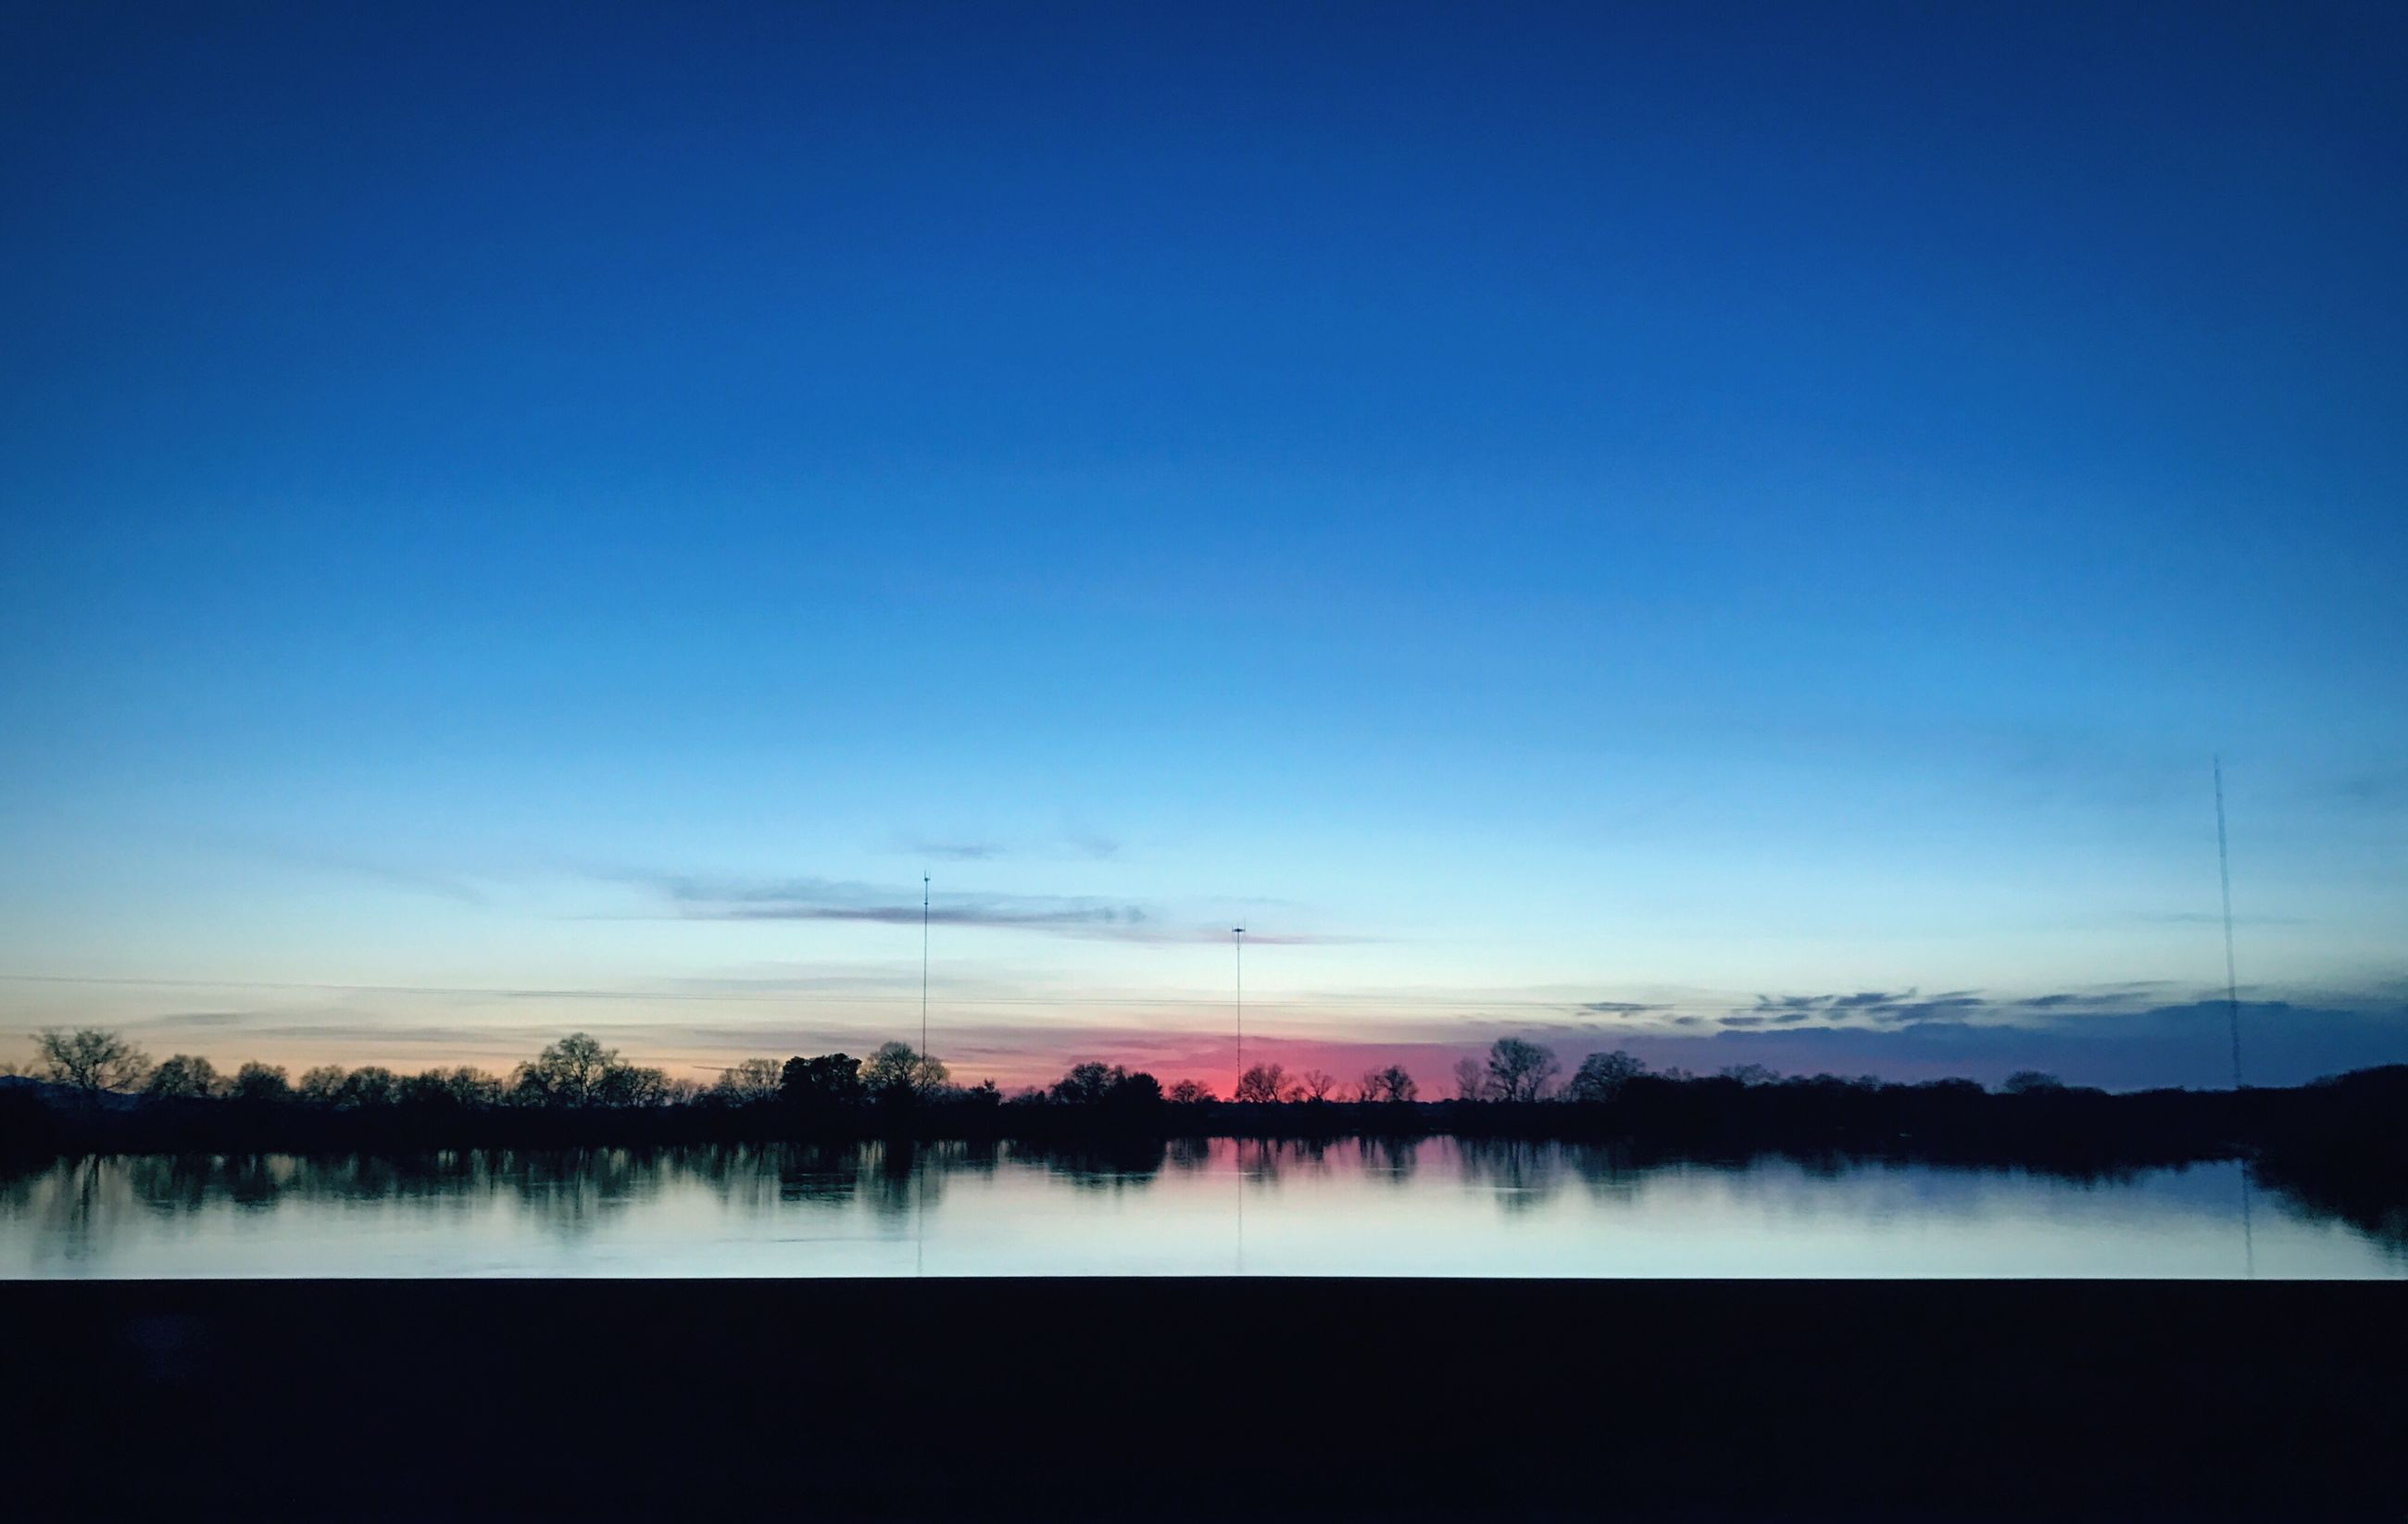 reflection, nature, blue, water, beauty in nature, tranquility, sky, scenics, no people, outdoors, tranquil scene, sunset, growth, landscape, day